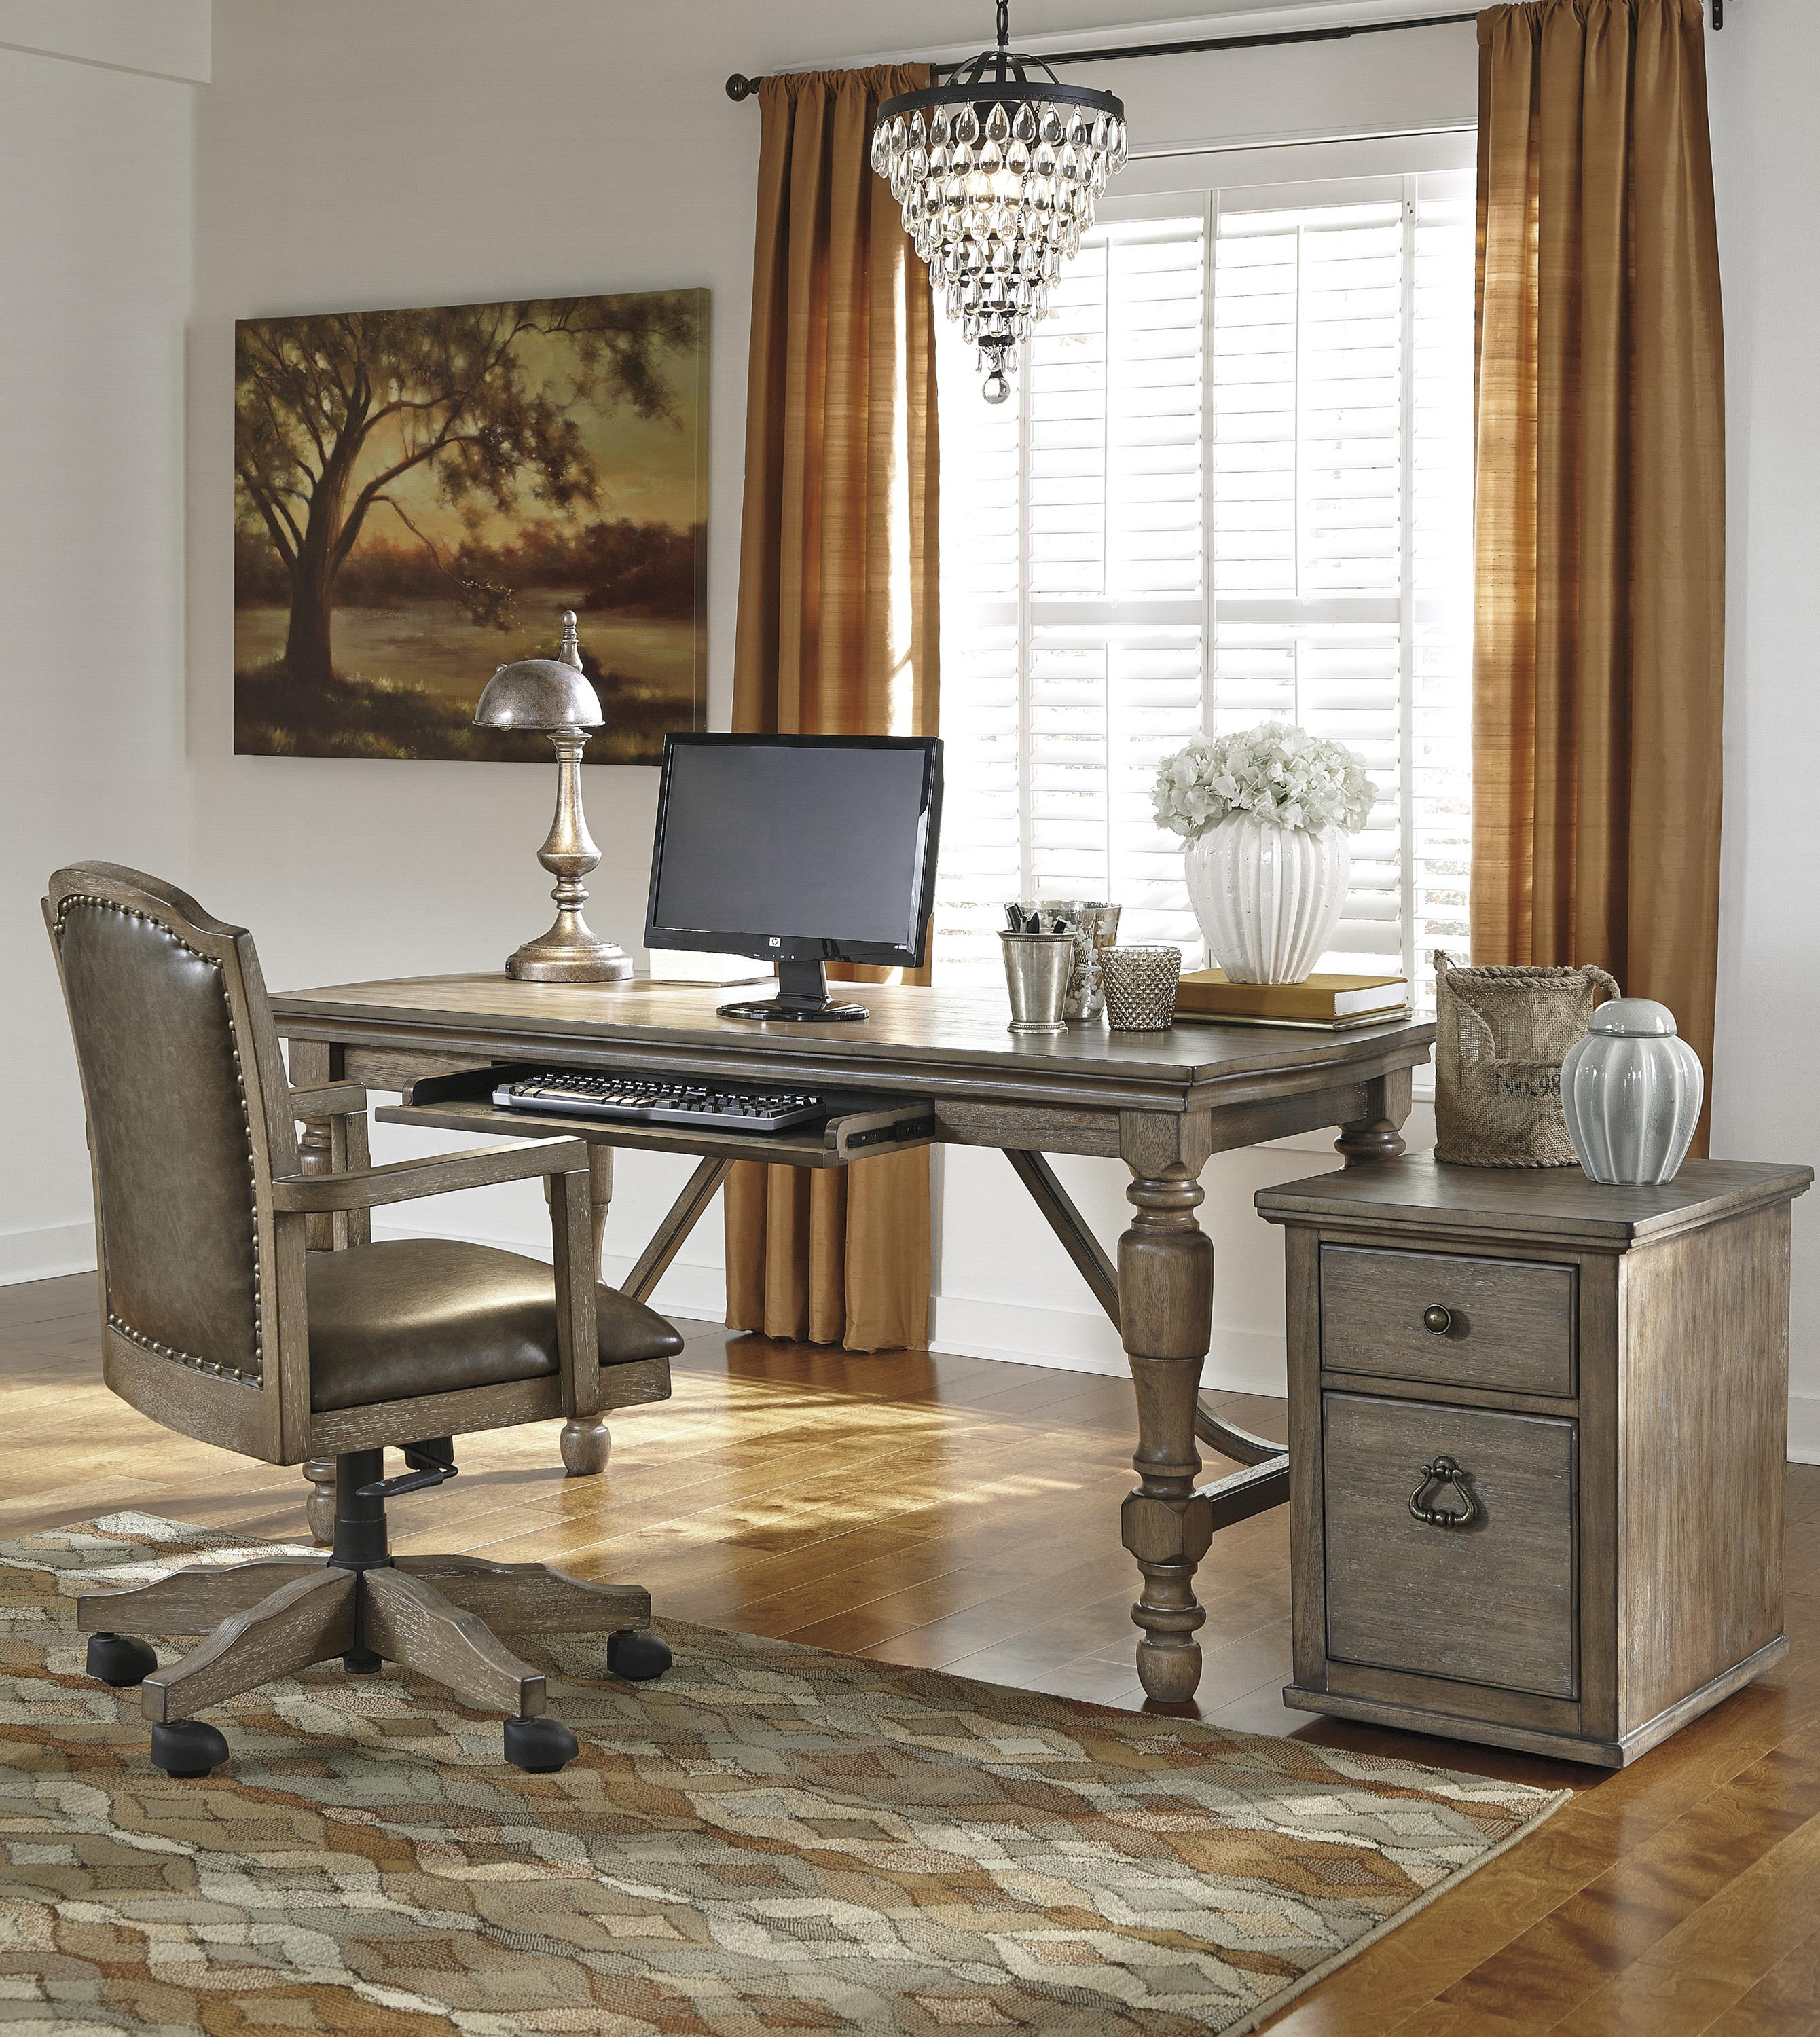 signature design by ashley furniture tanshire gray brown home office desk with turned legs sams appliance furniture table desk ashley furniture home office desk